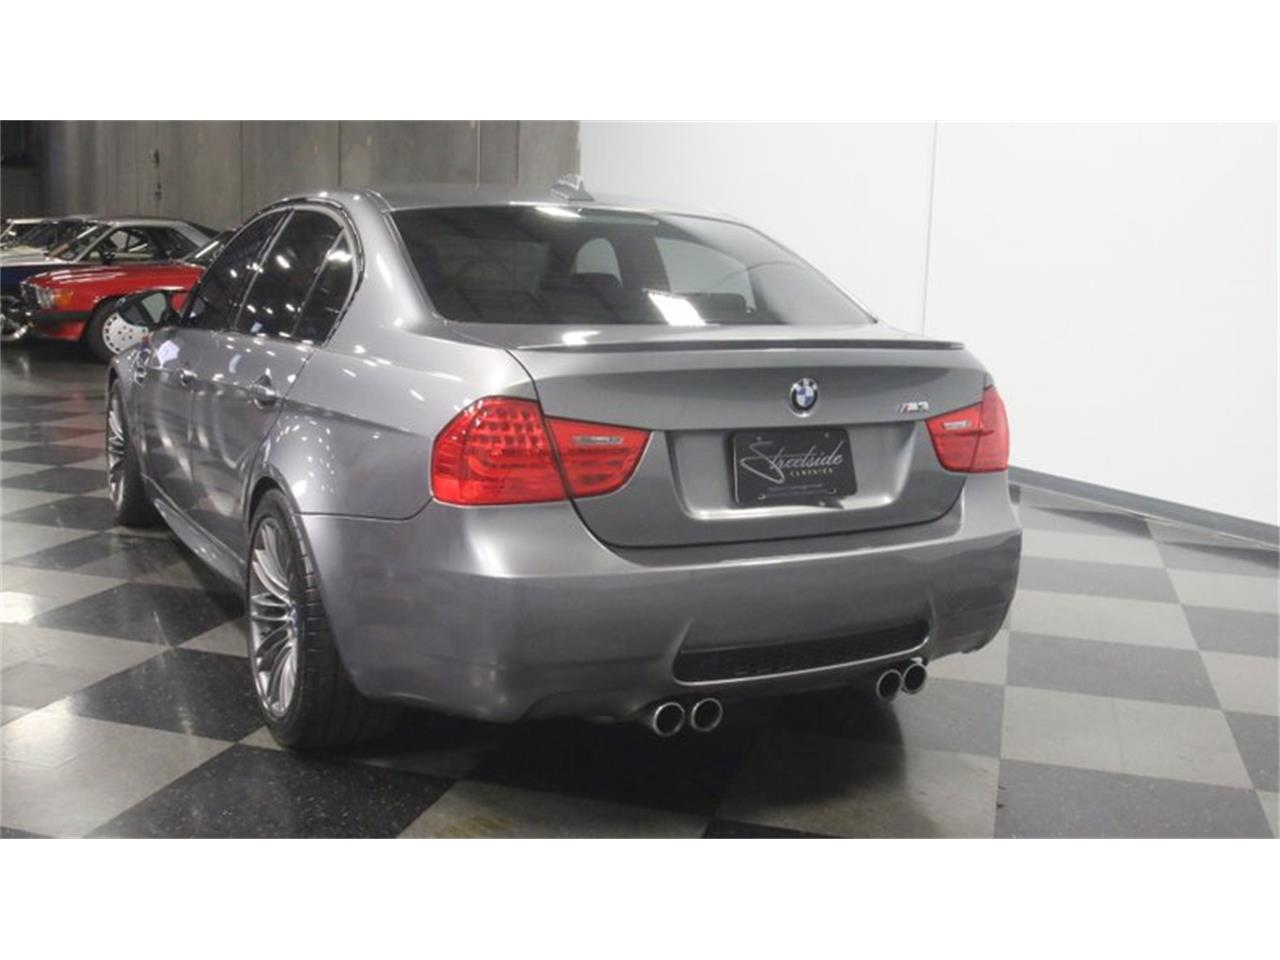 2010 BMW M3 for sale in Lithia Springs, GA – photo 10